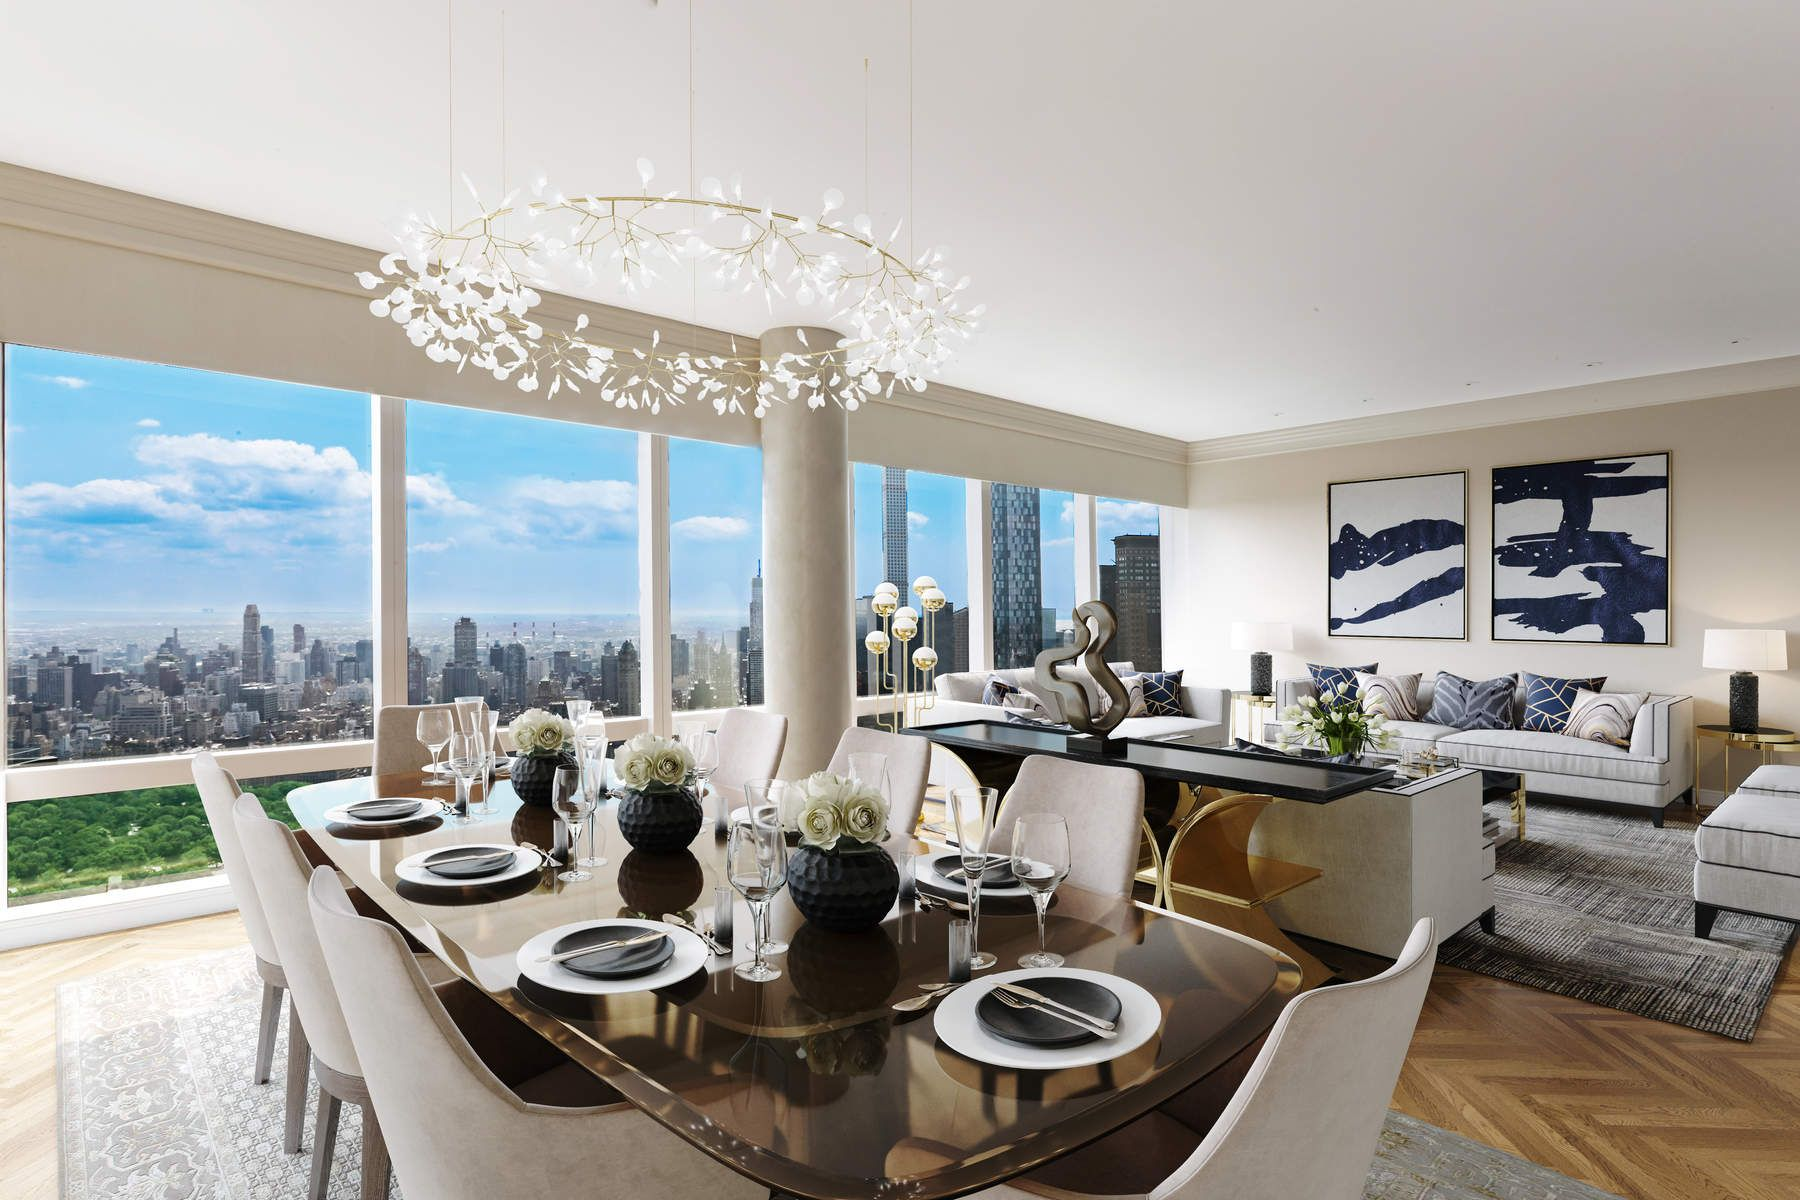 Condominium for Sale at The Residences Mandarin Oriental 75C/75E 80 Columbus Circle Apt 75C/75E, New York, New York 10023 United States